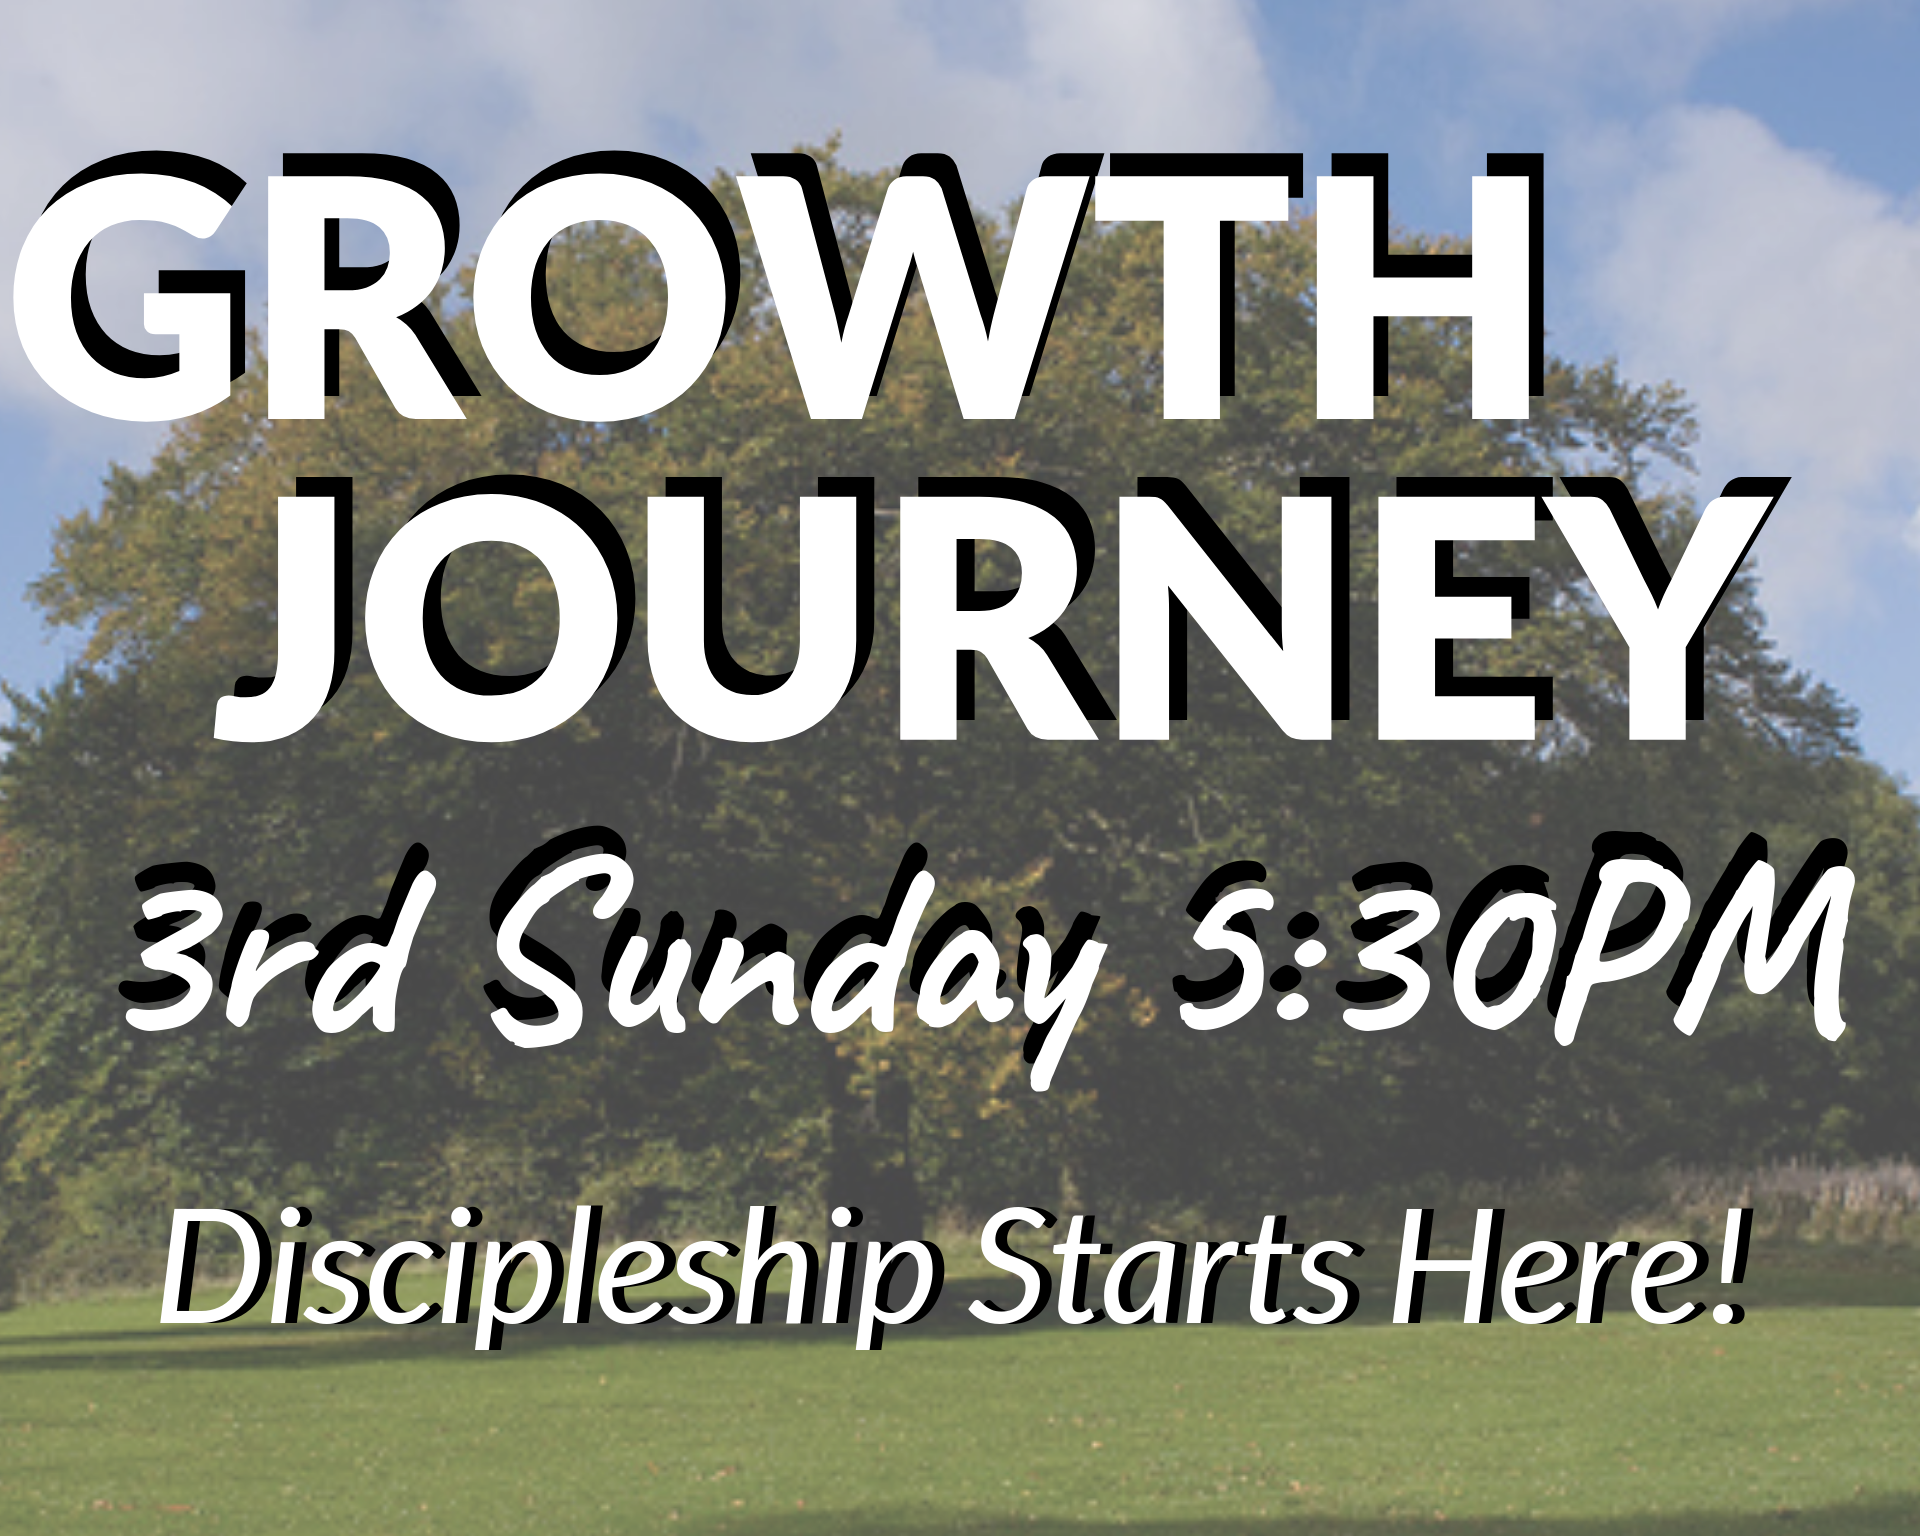 Growth Journey - Discipleship Starts Here